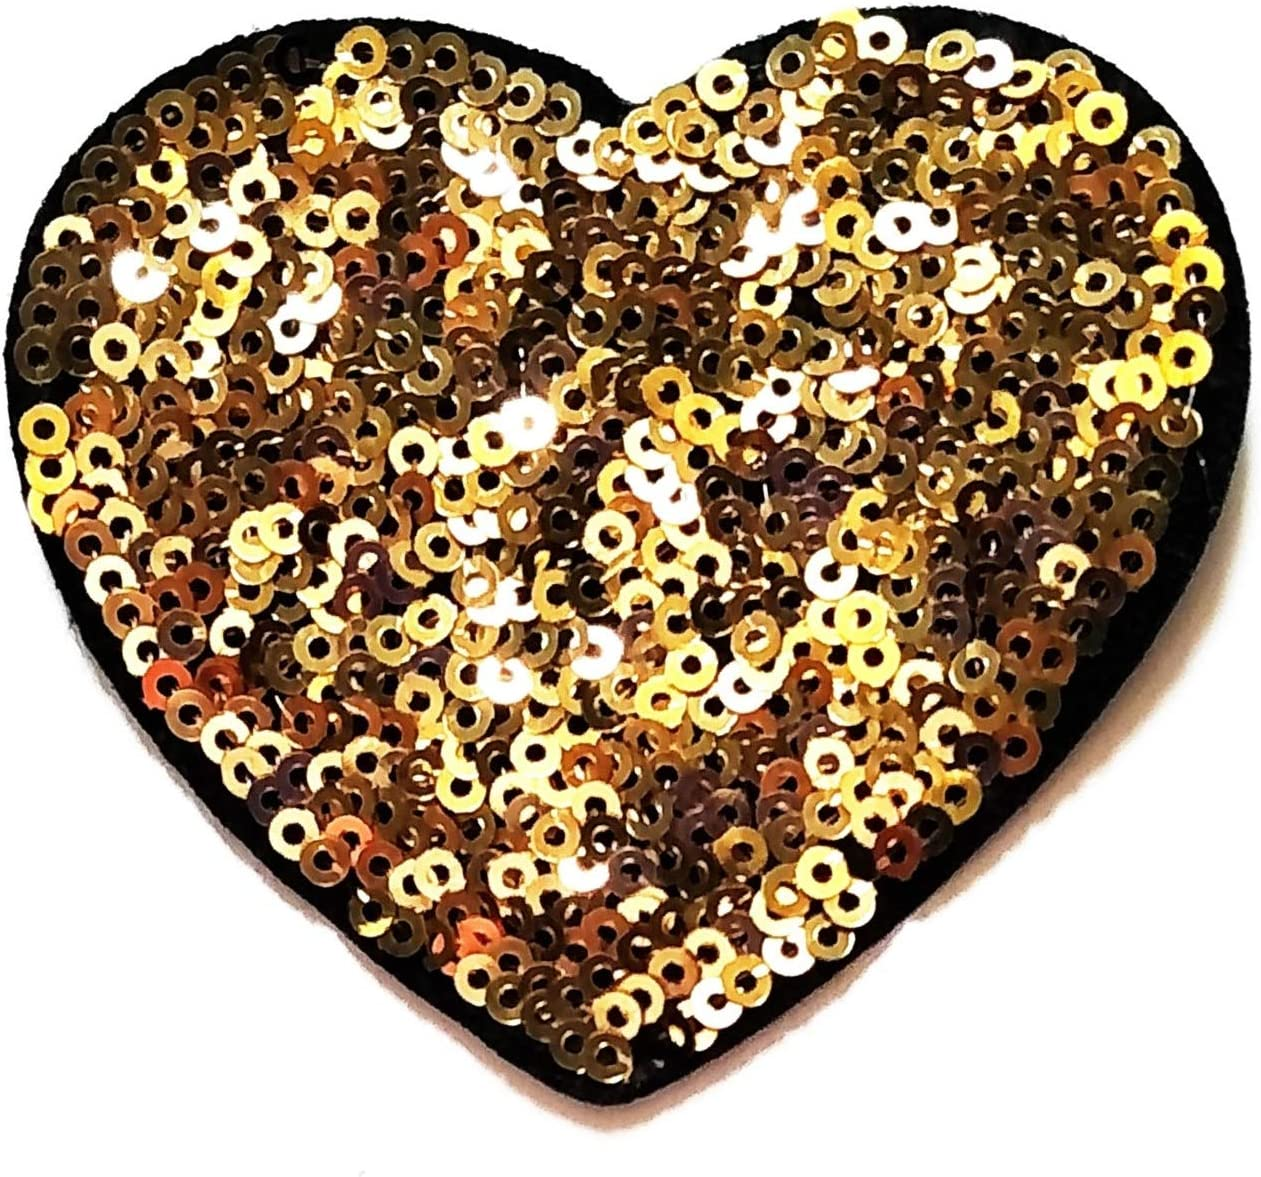 Nipitshop Patches Love Heart wholesale Surprise price Beautiful S Sequin Shine Gold